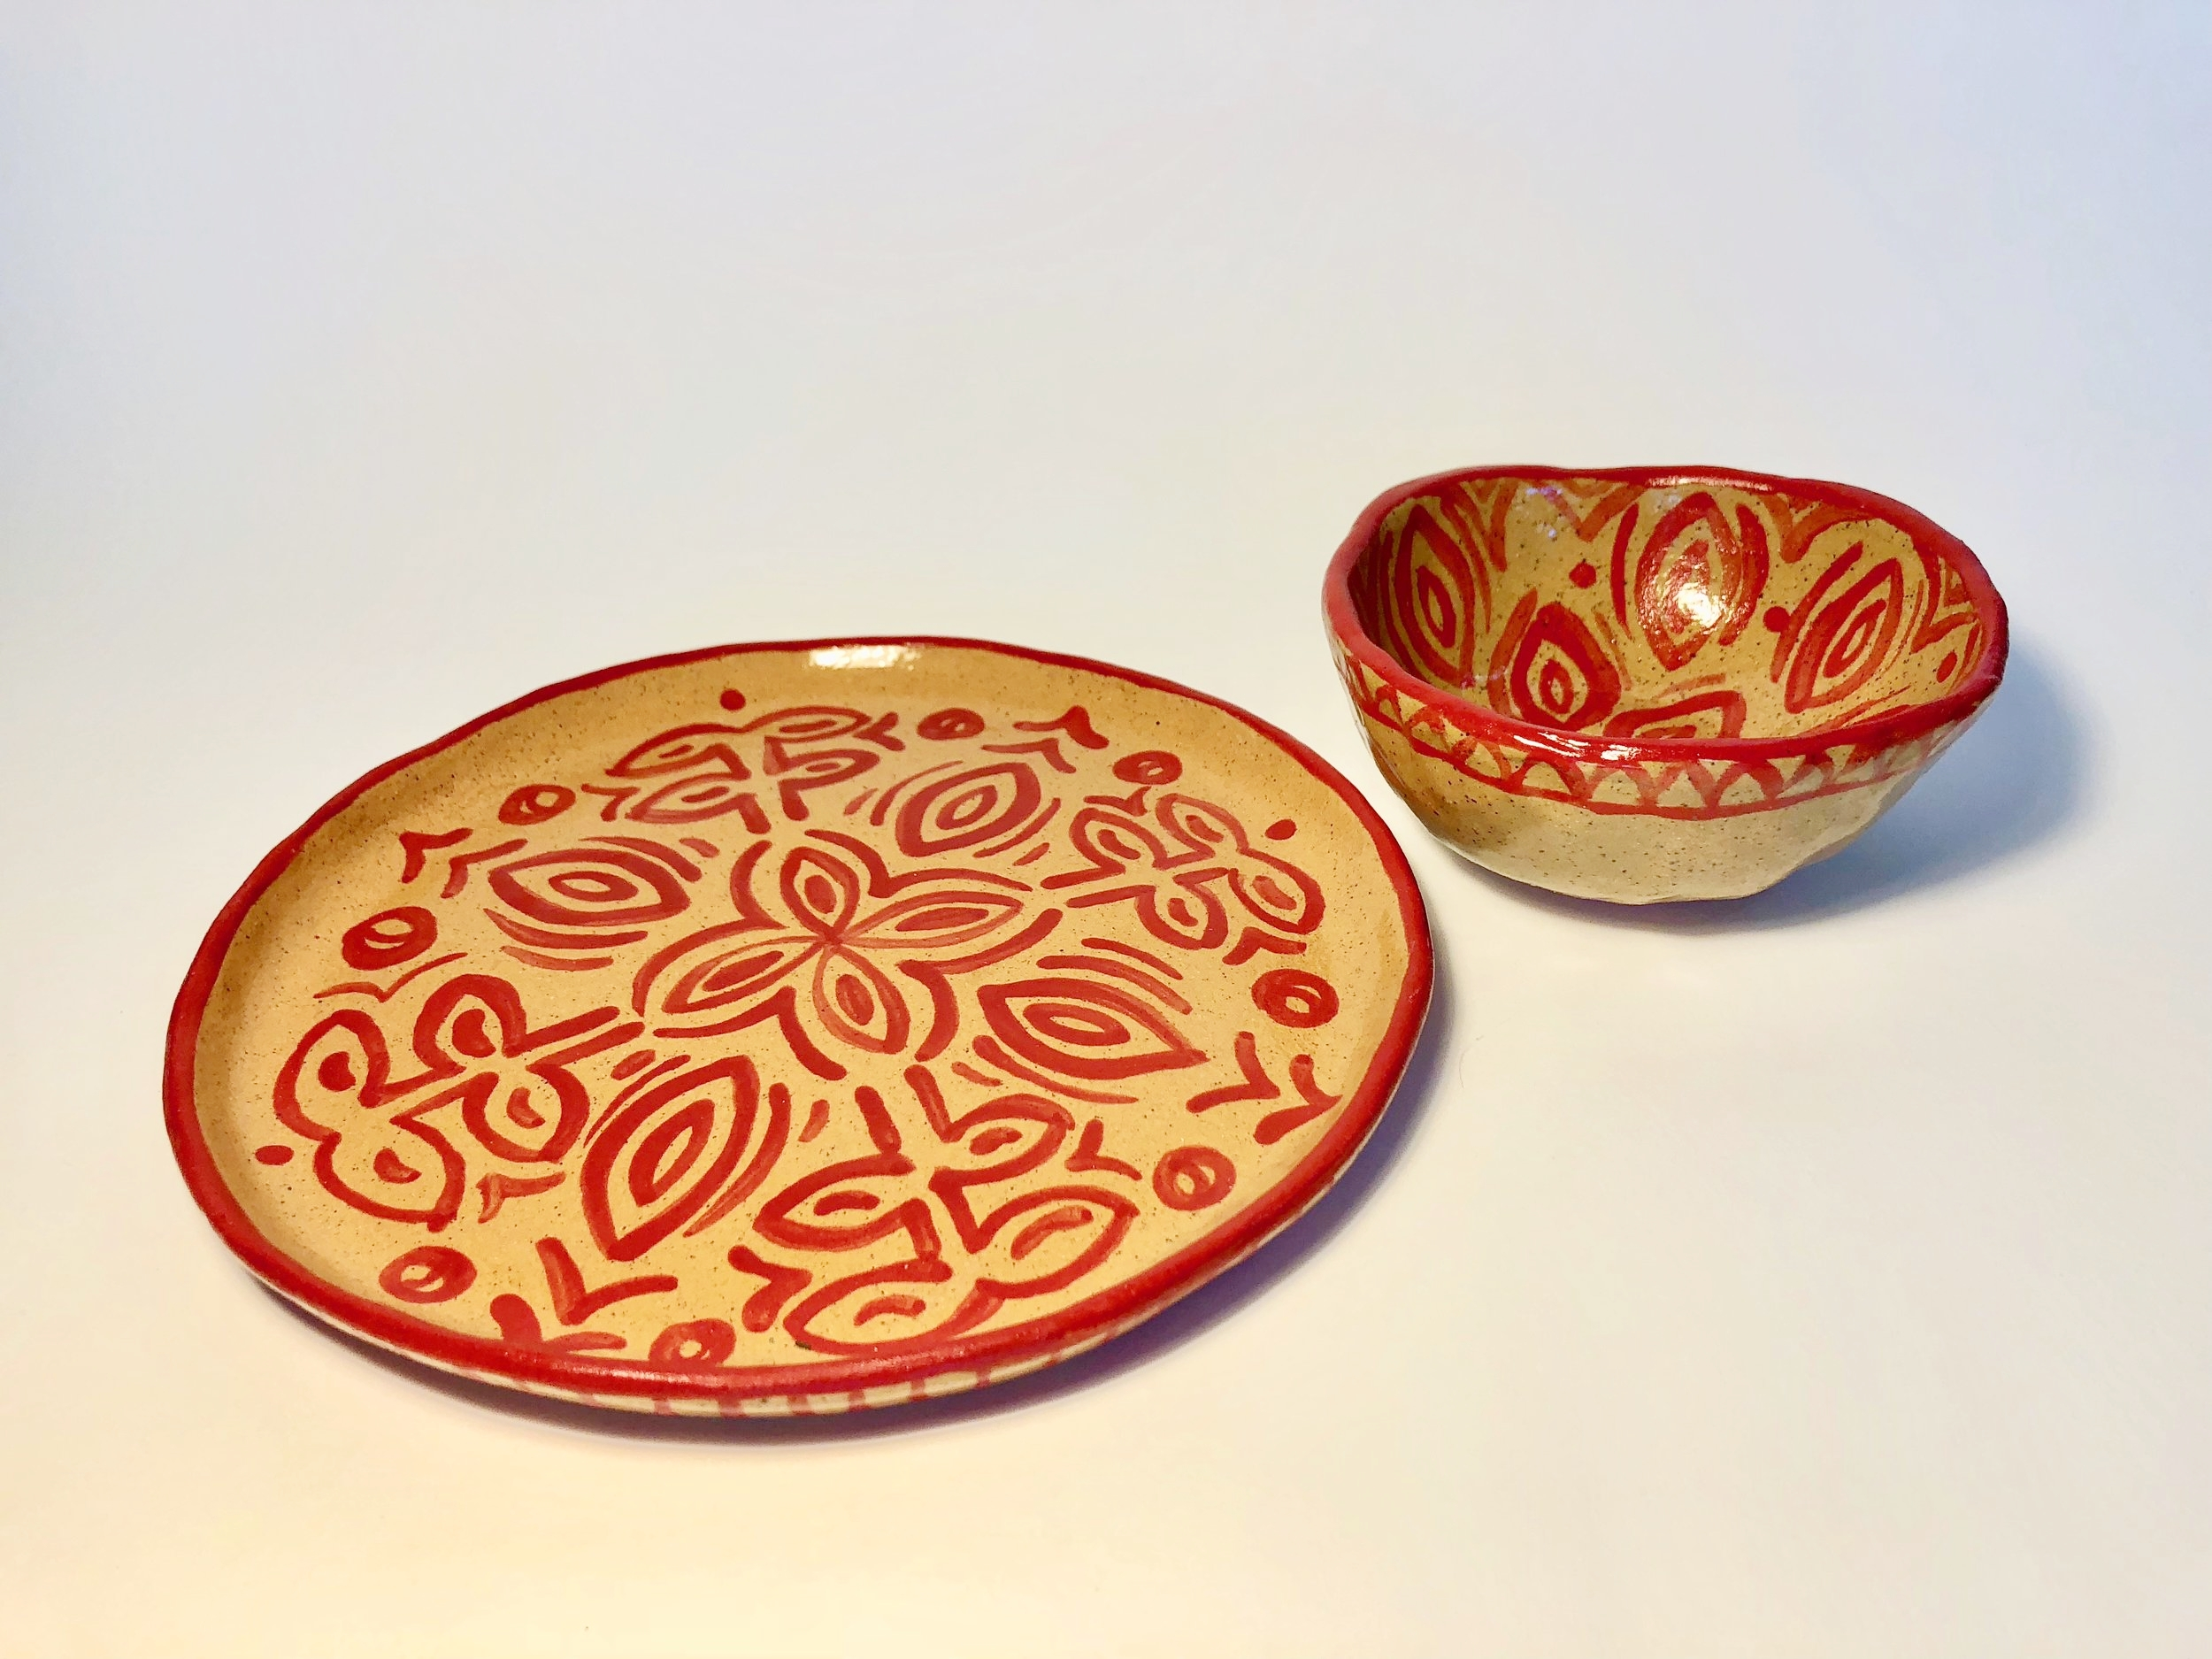 Hand-painted plates and pinch pot bowls, available in a variety of colors.